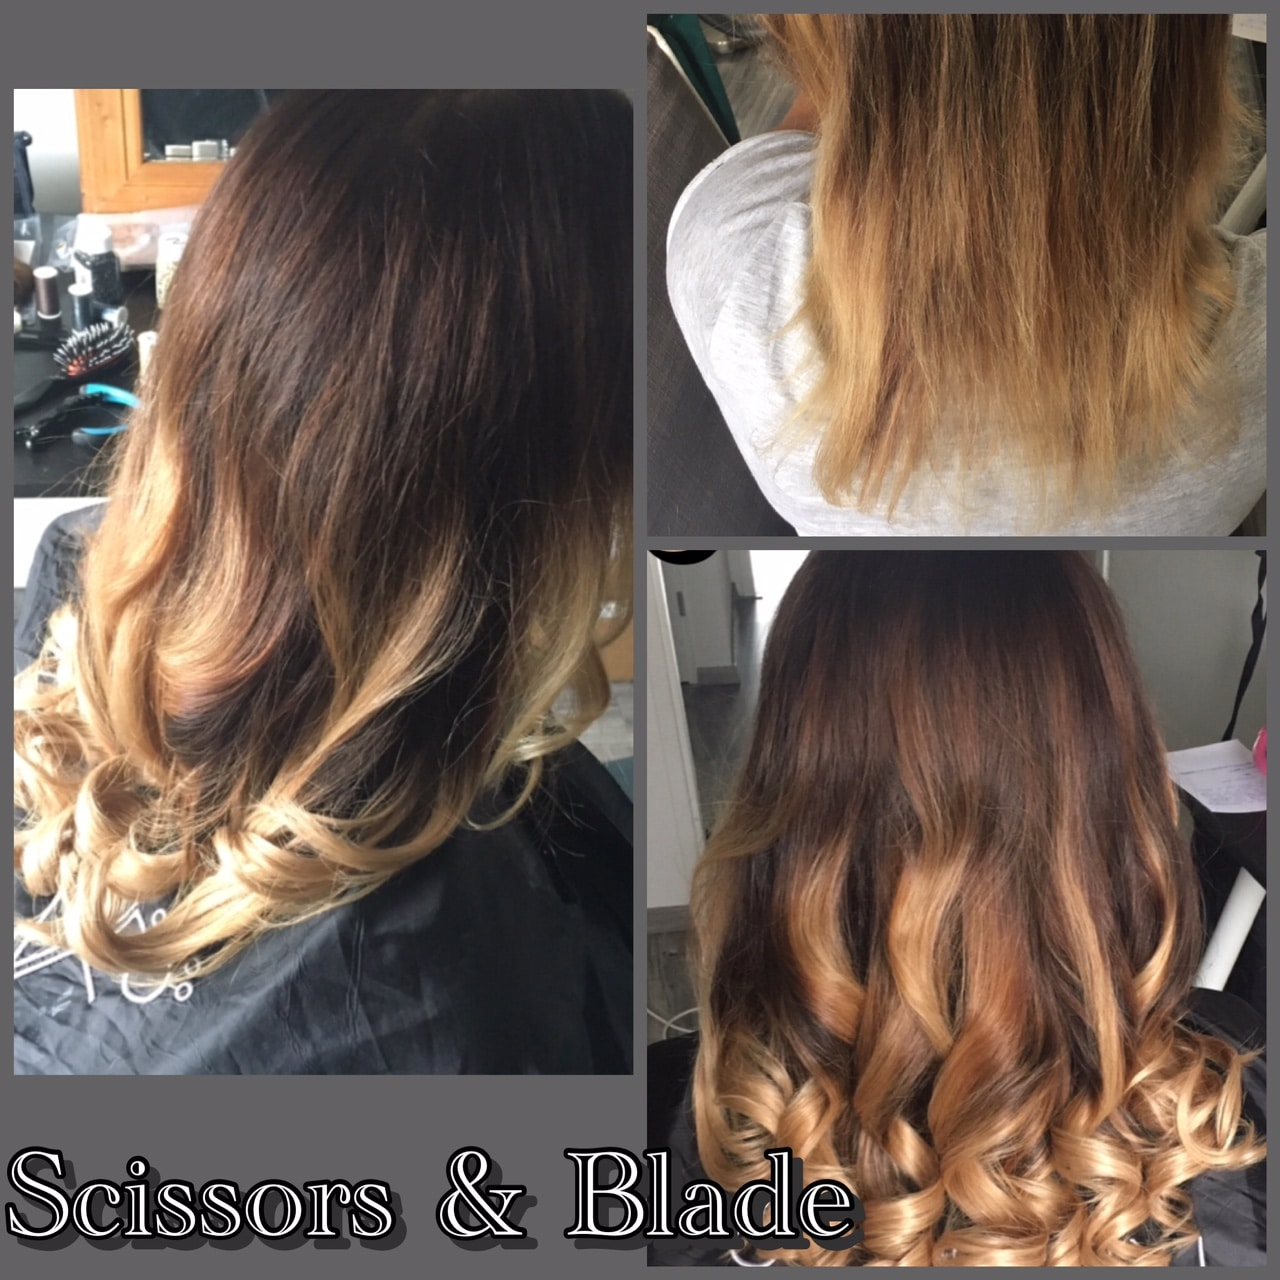 scissors-blade hair extensions